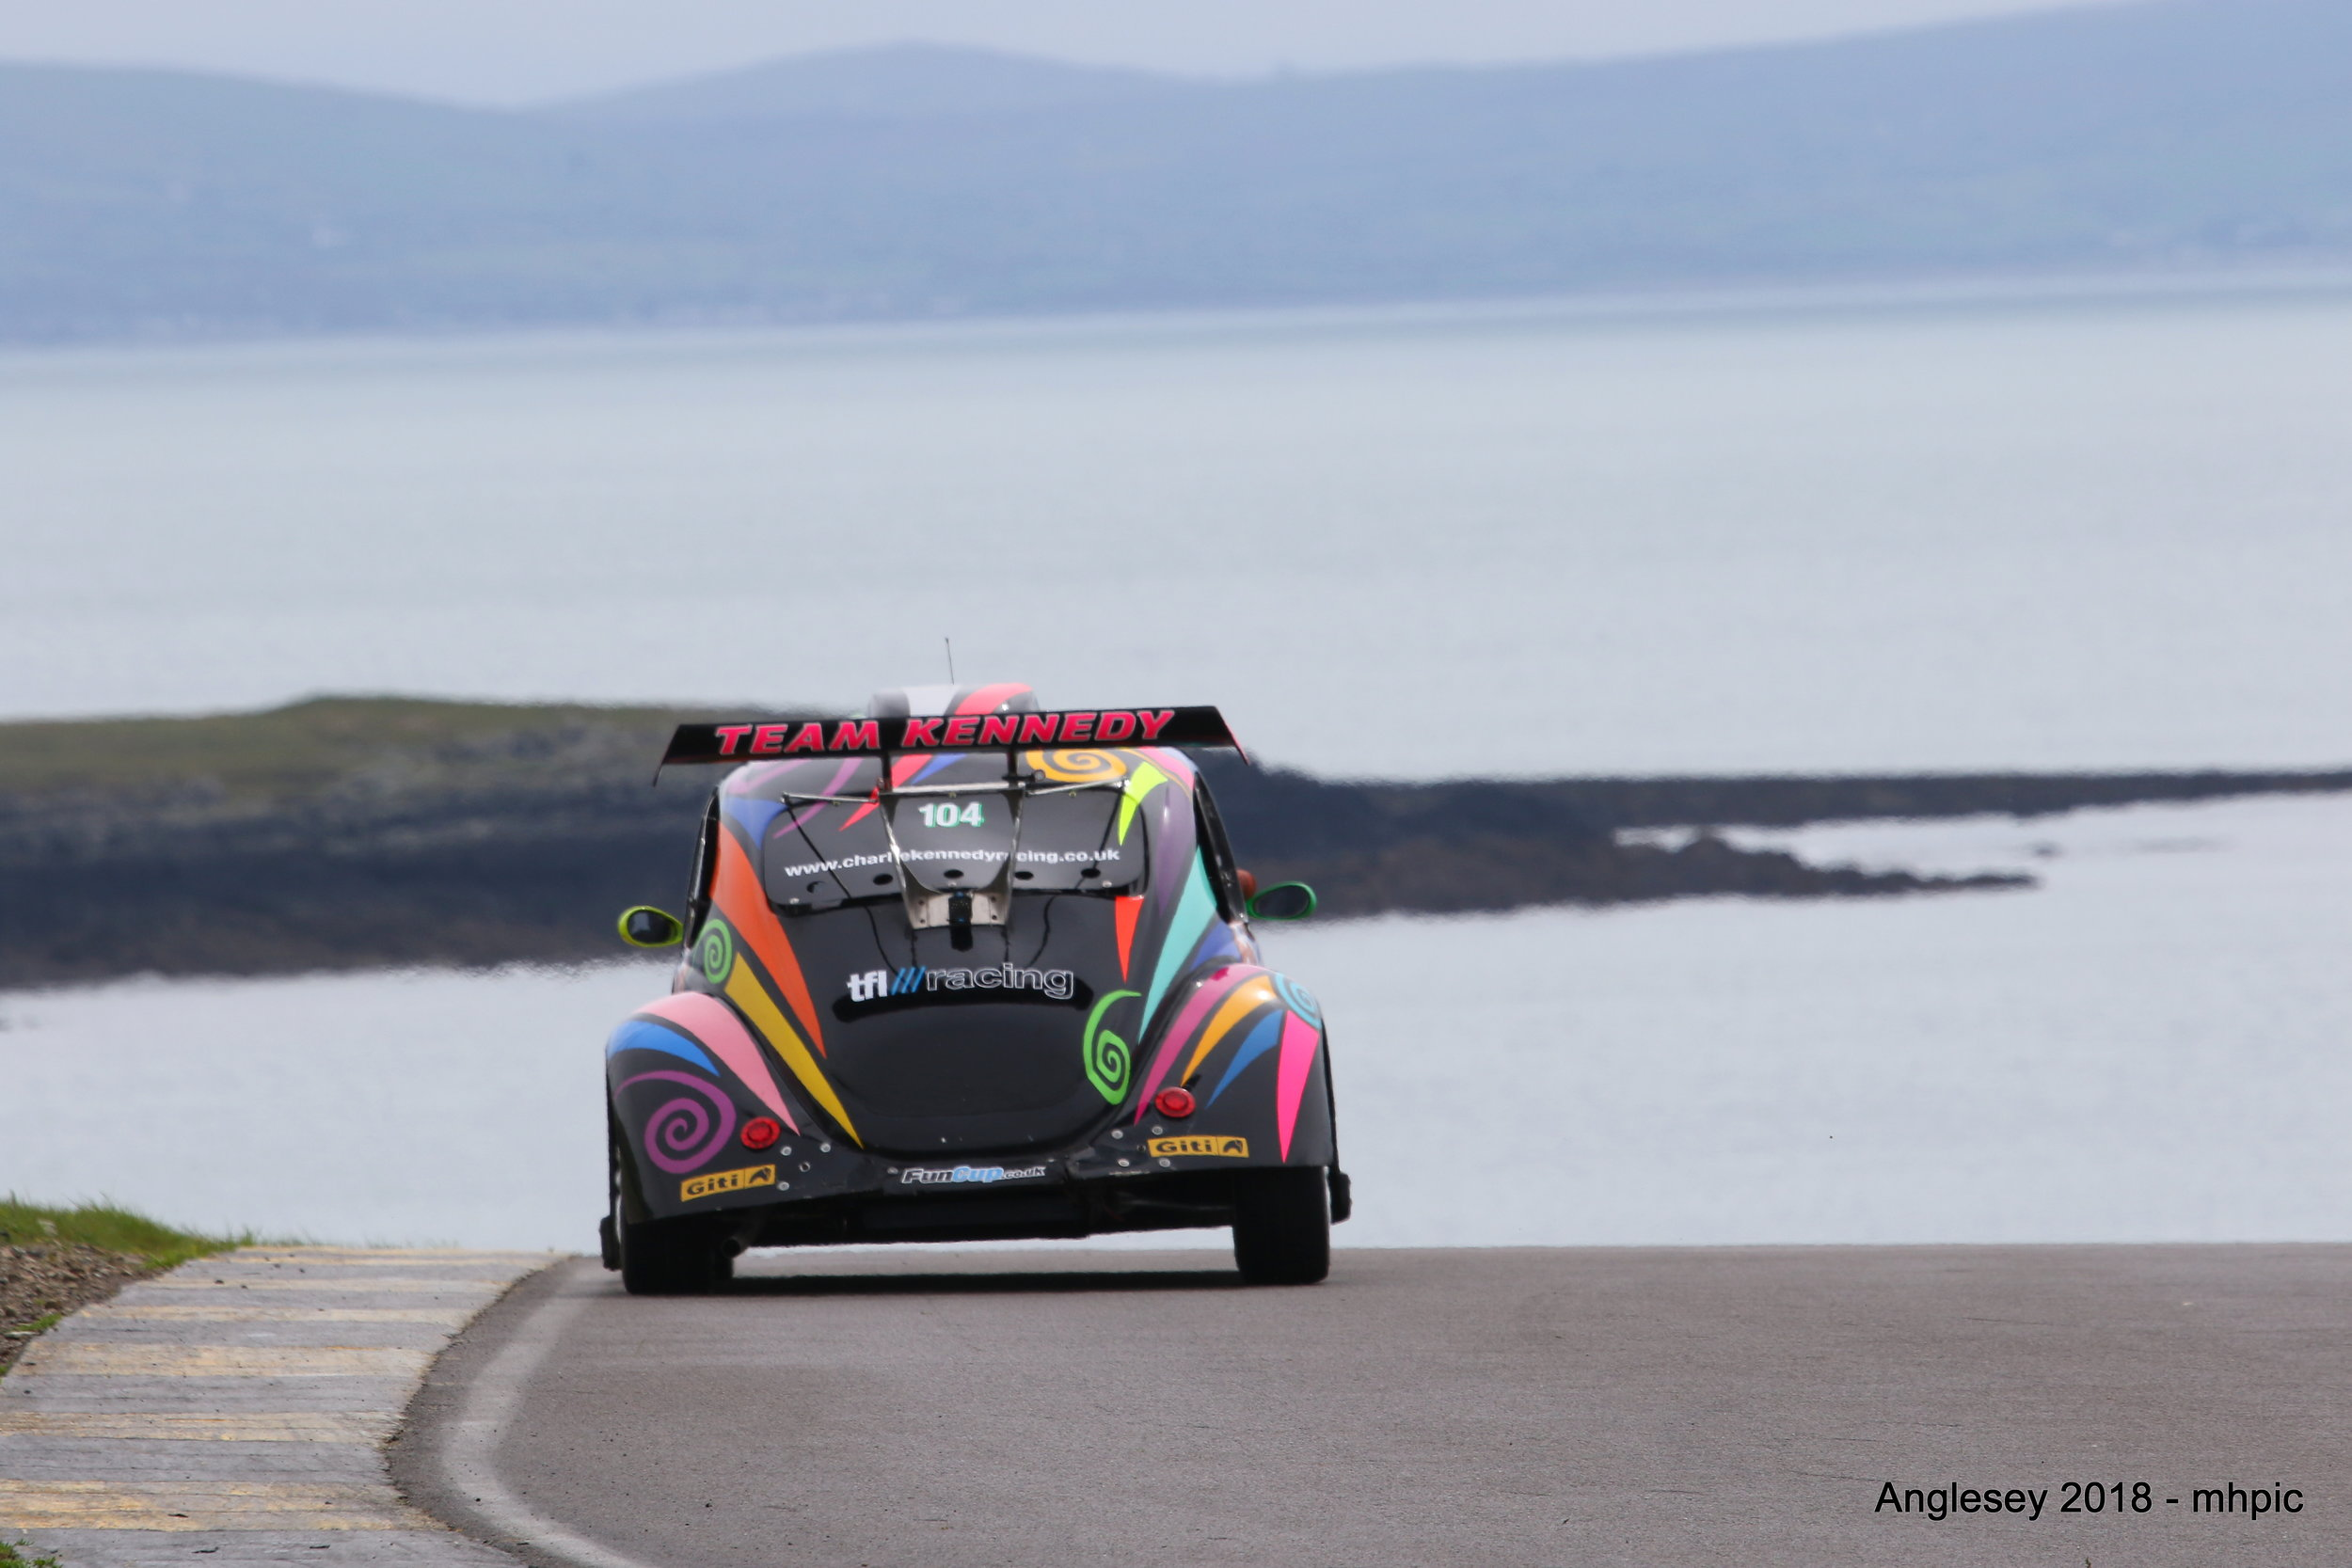 Anglesey Fun Cup, May 2018